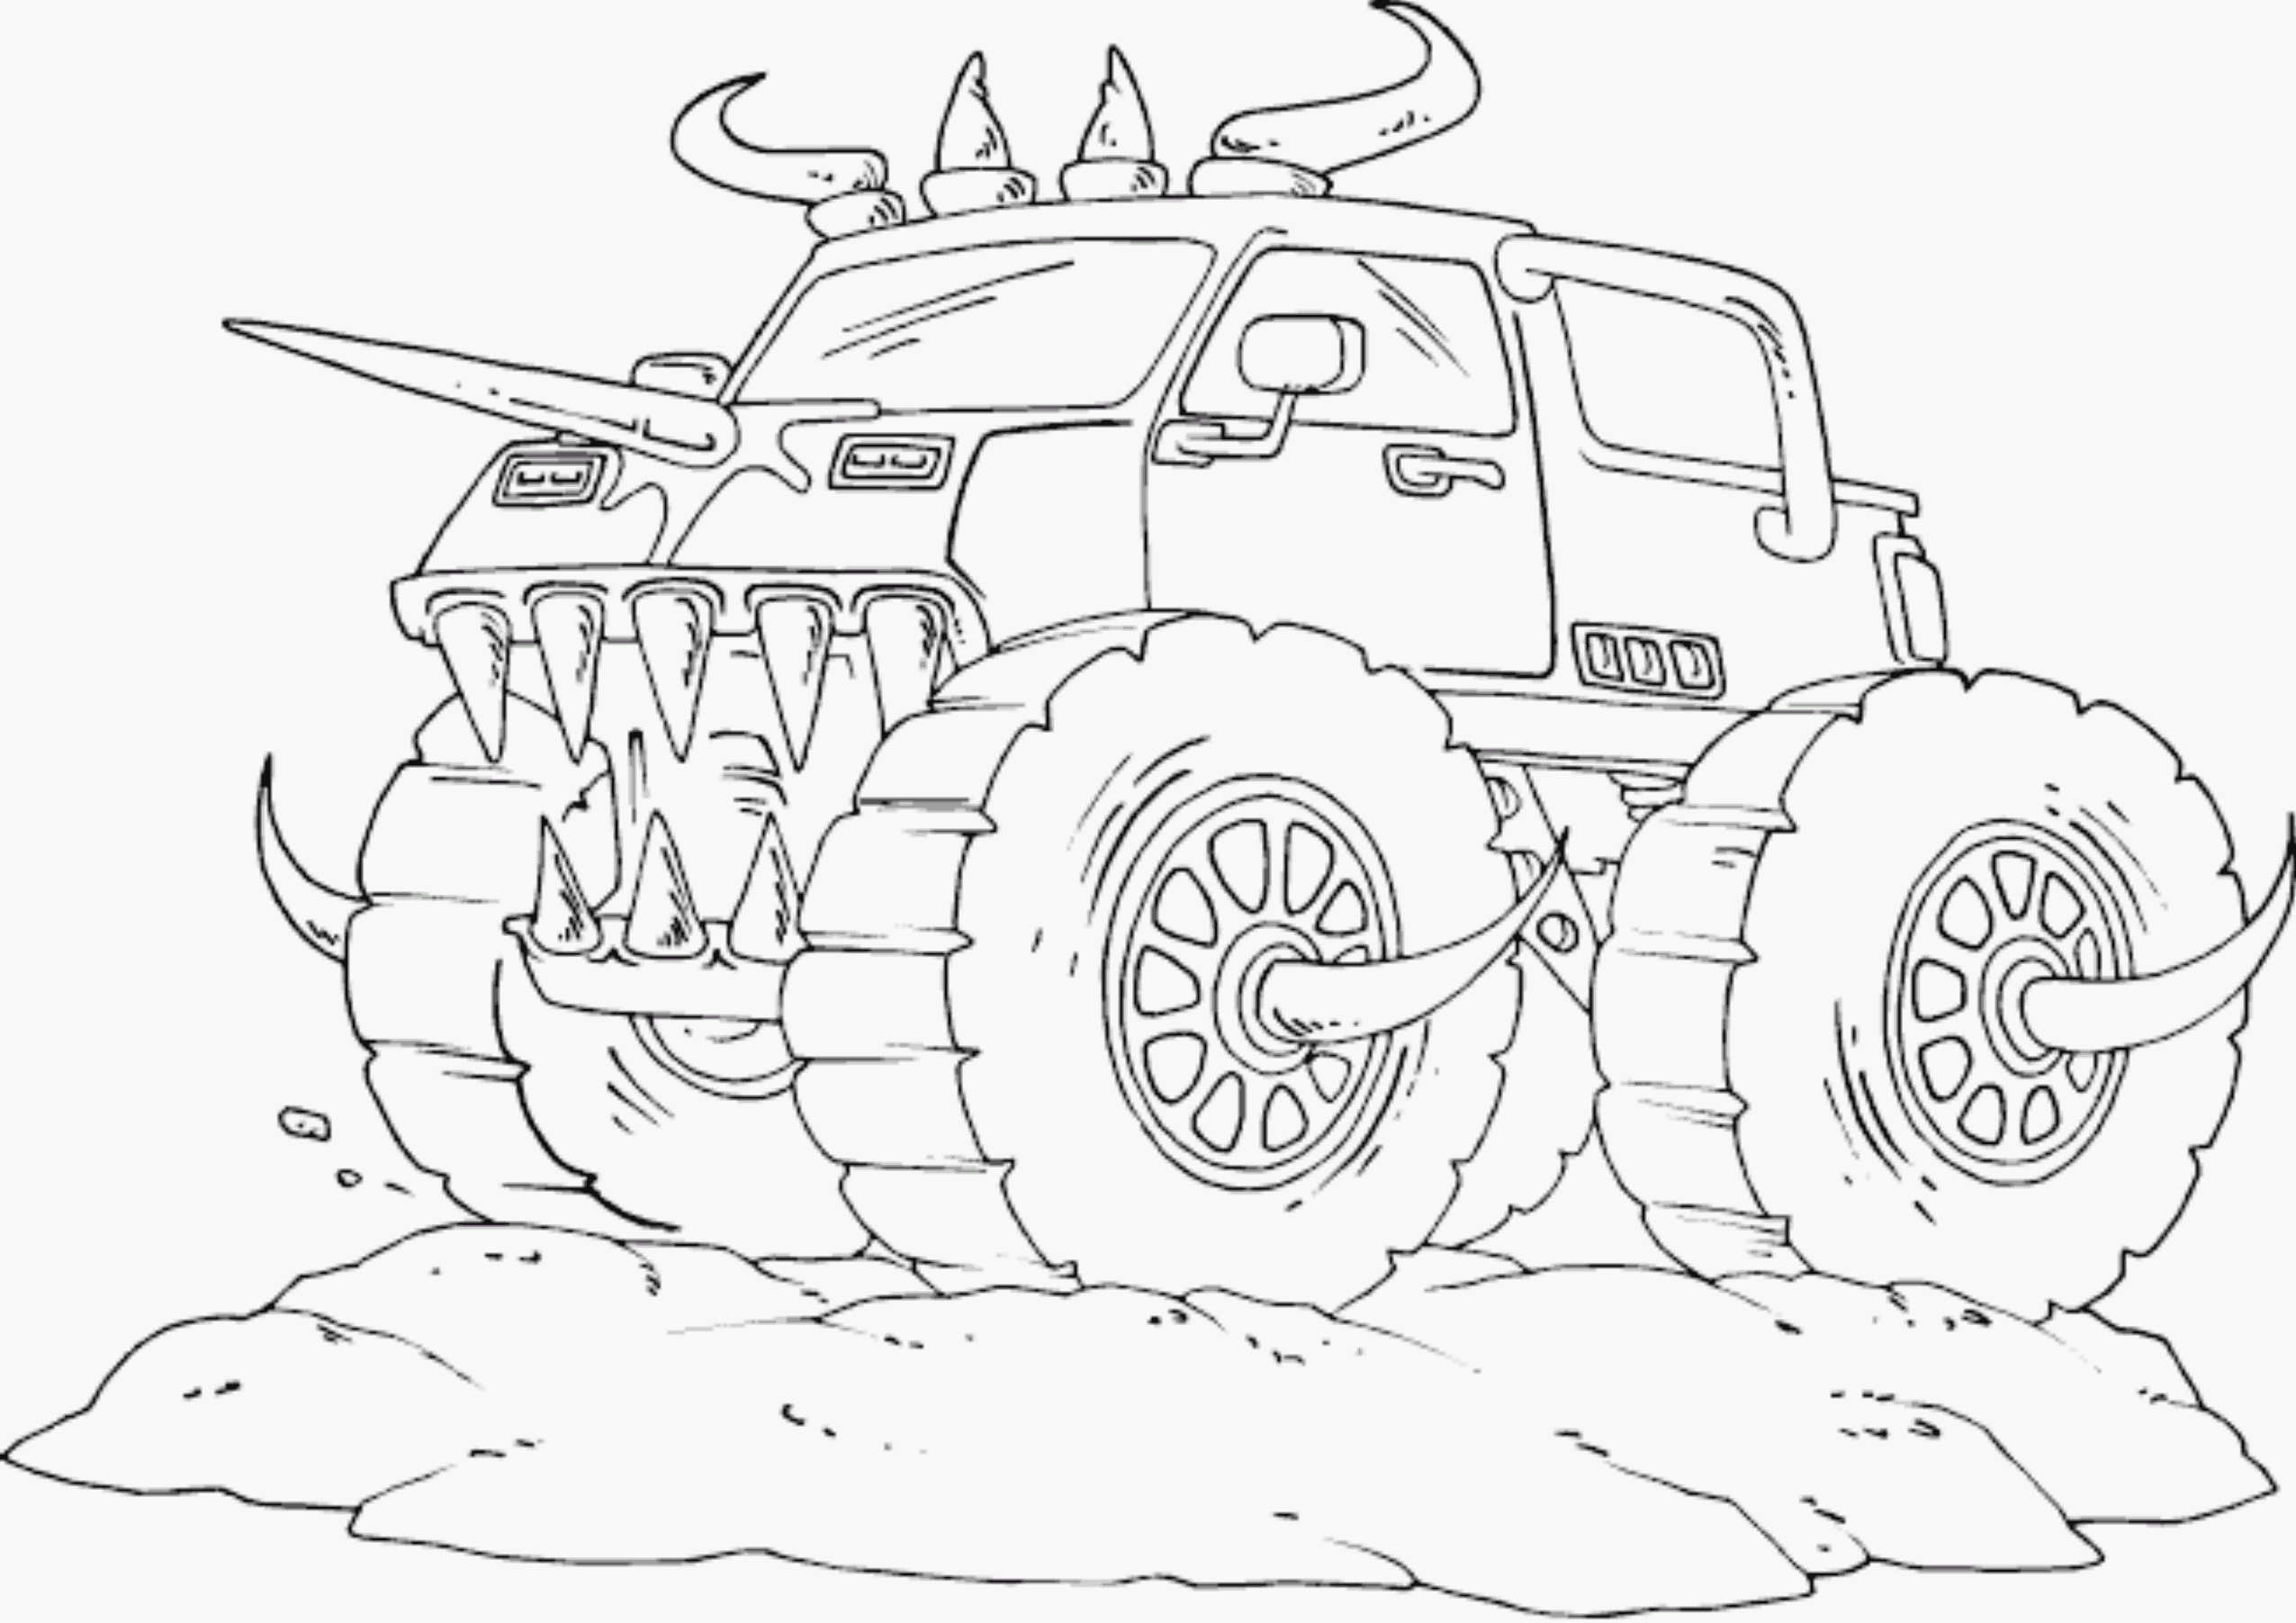 It's just a picture of Nerdy Monster Truck Printable Coloring Pages